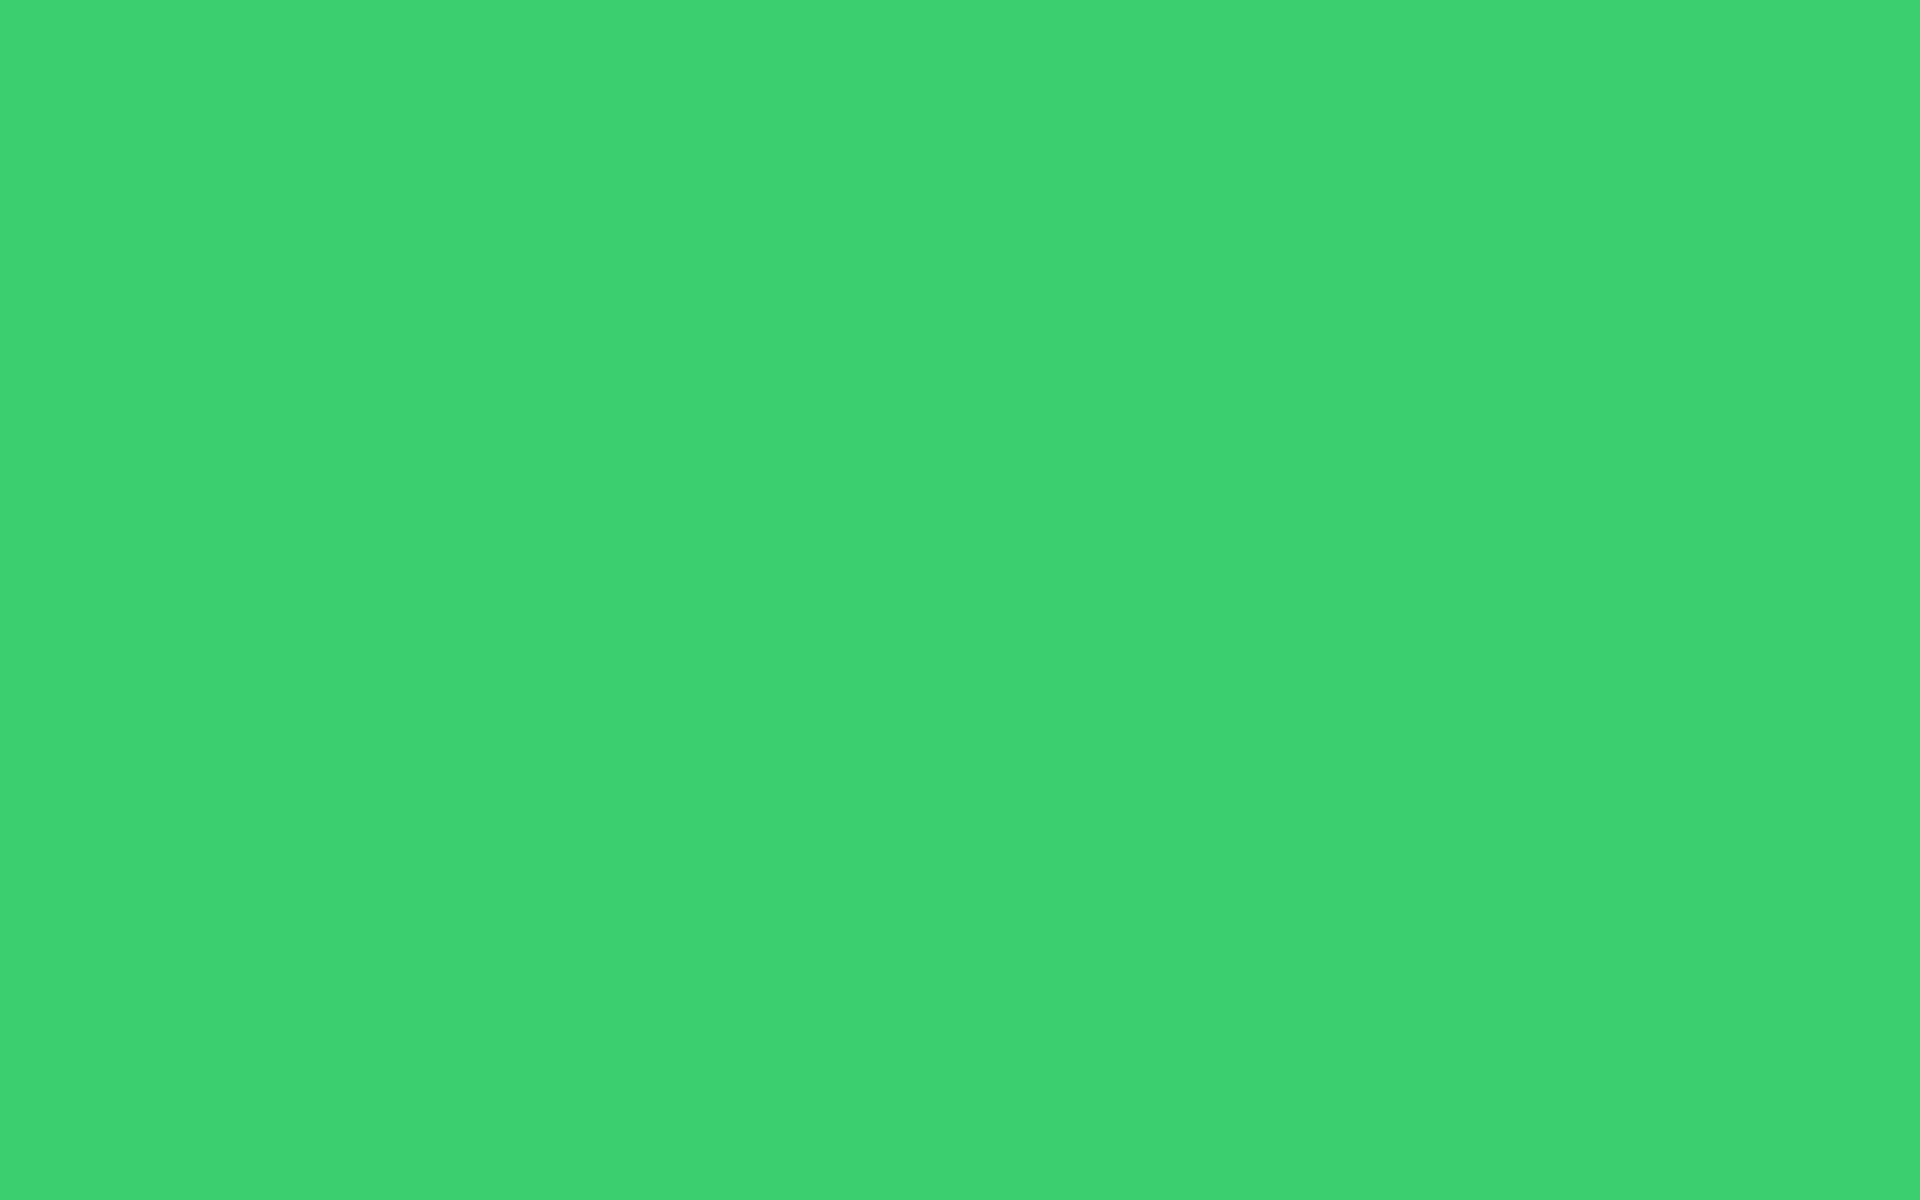 1920x1200 UFO Green Solid Color Background